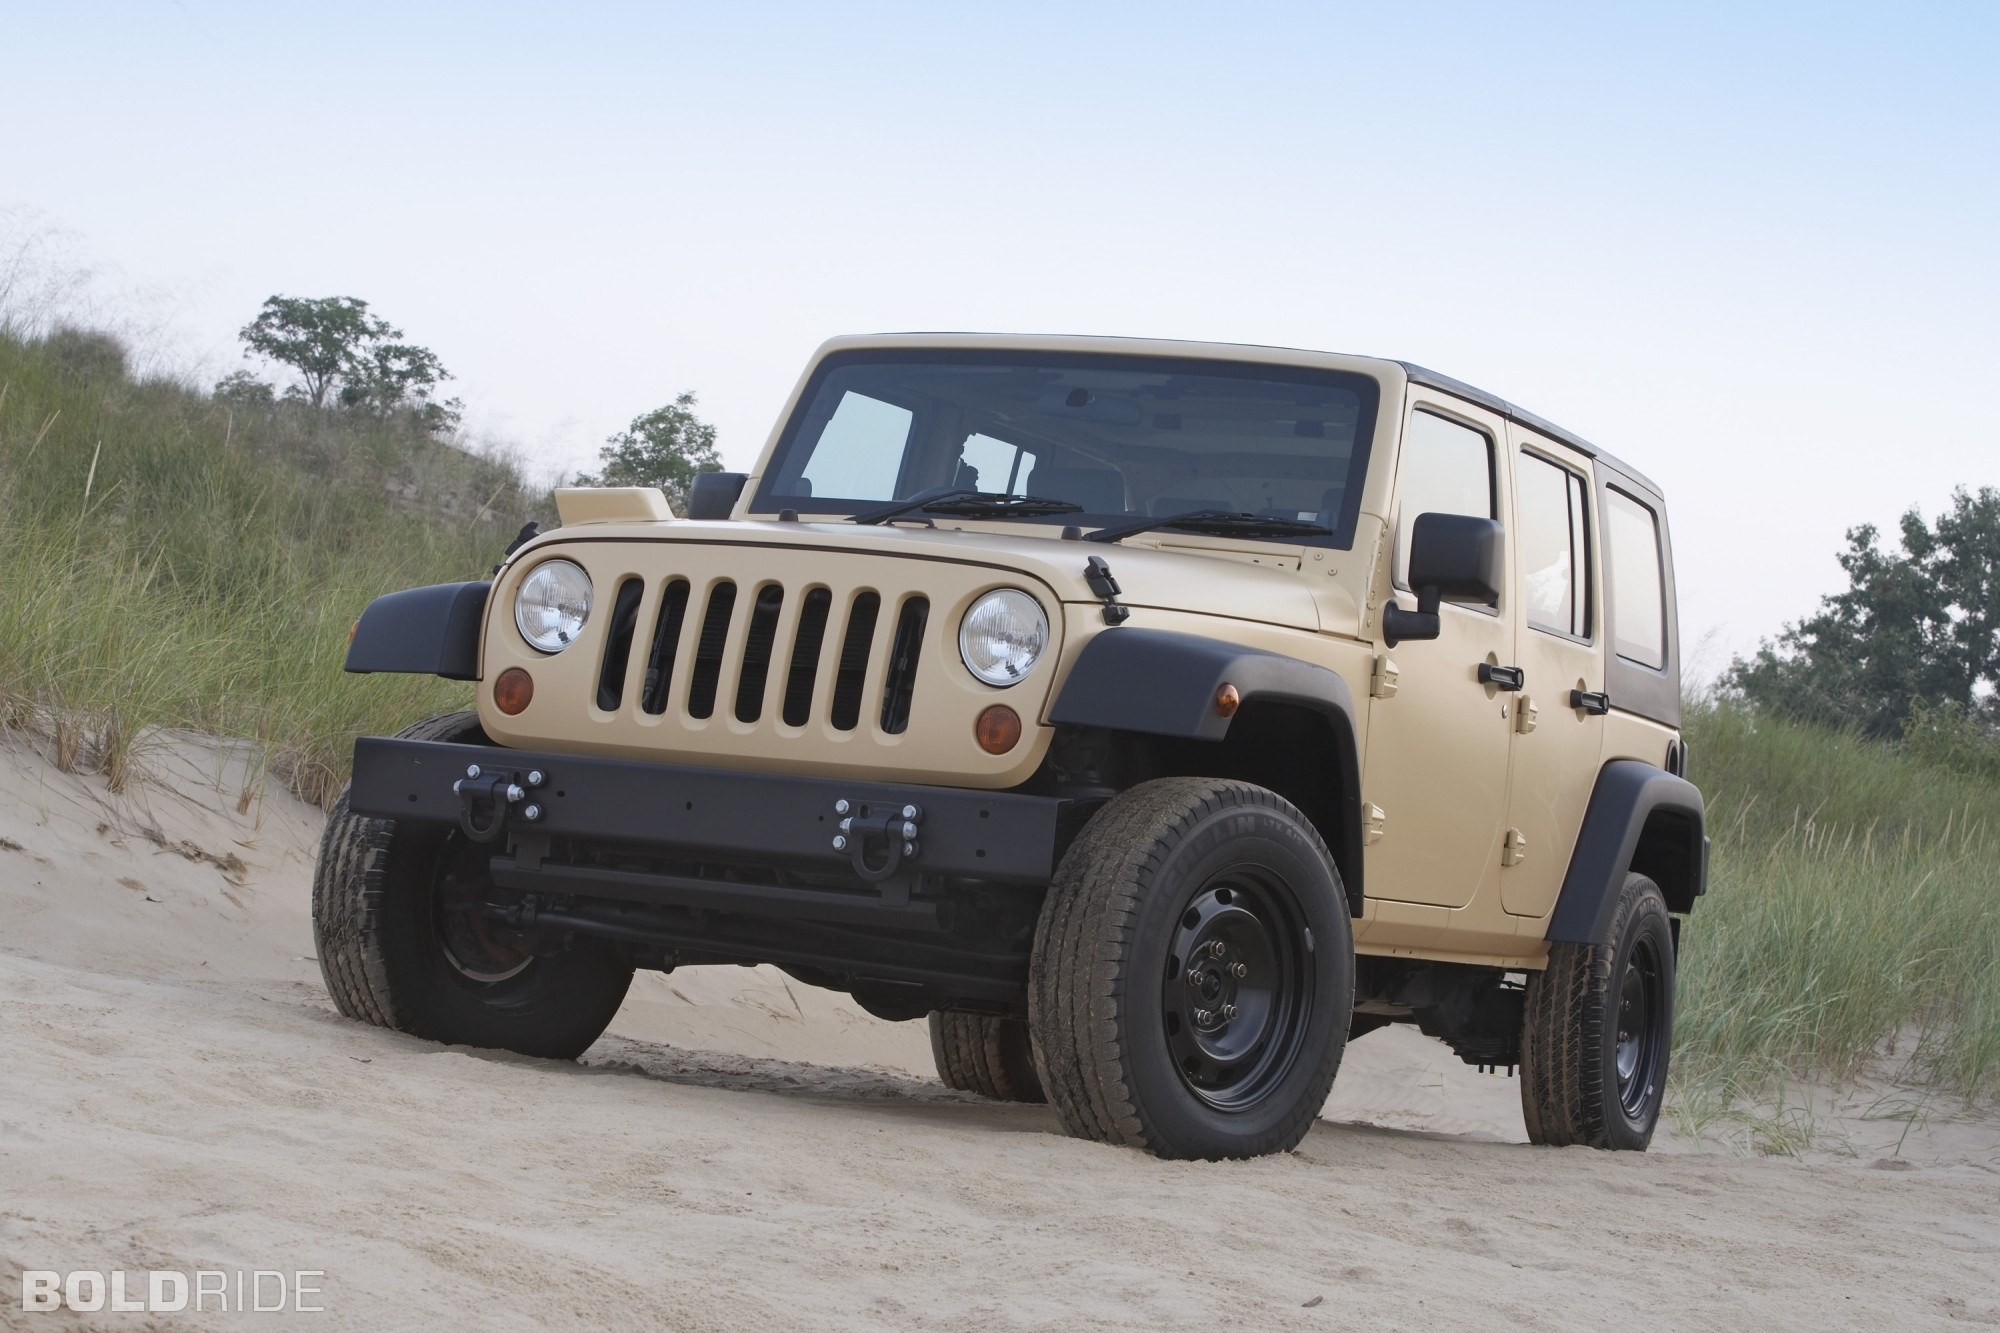 Fiat-Chrysler mulls partnership with Romania's Romarm in army Jeep production